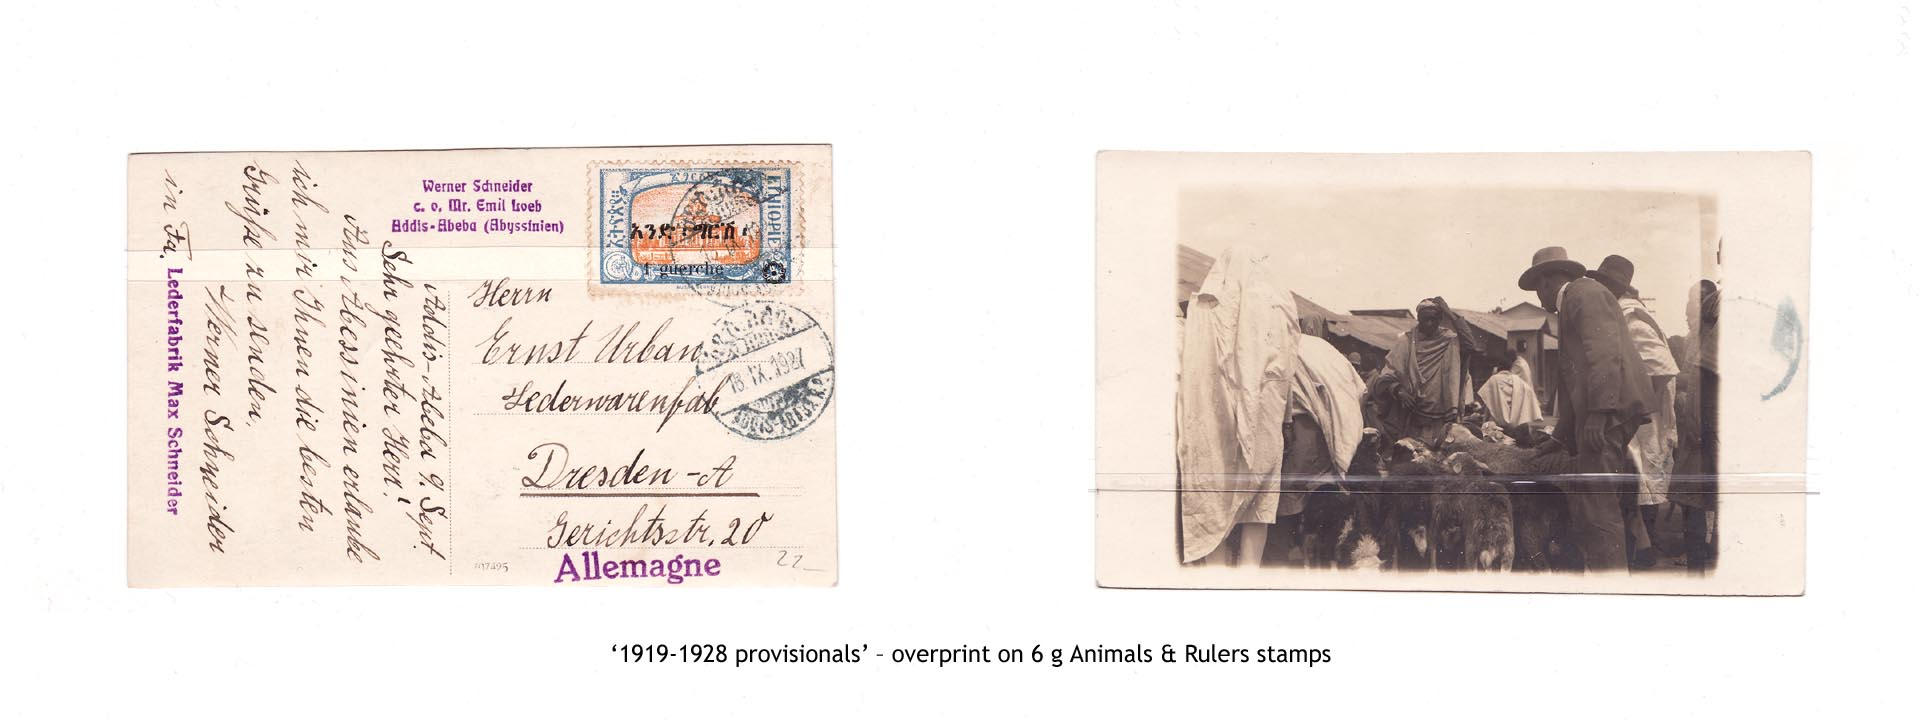 1919-1928 provisionals' – overprint on 6 g Animals & Rulers stamps